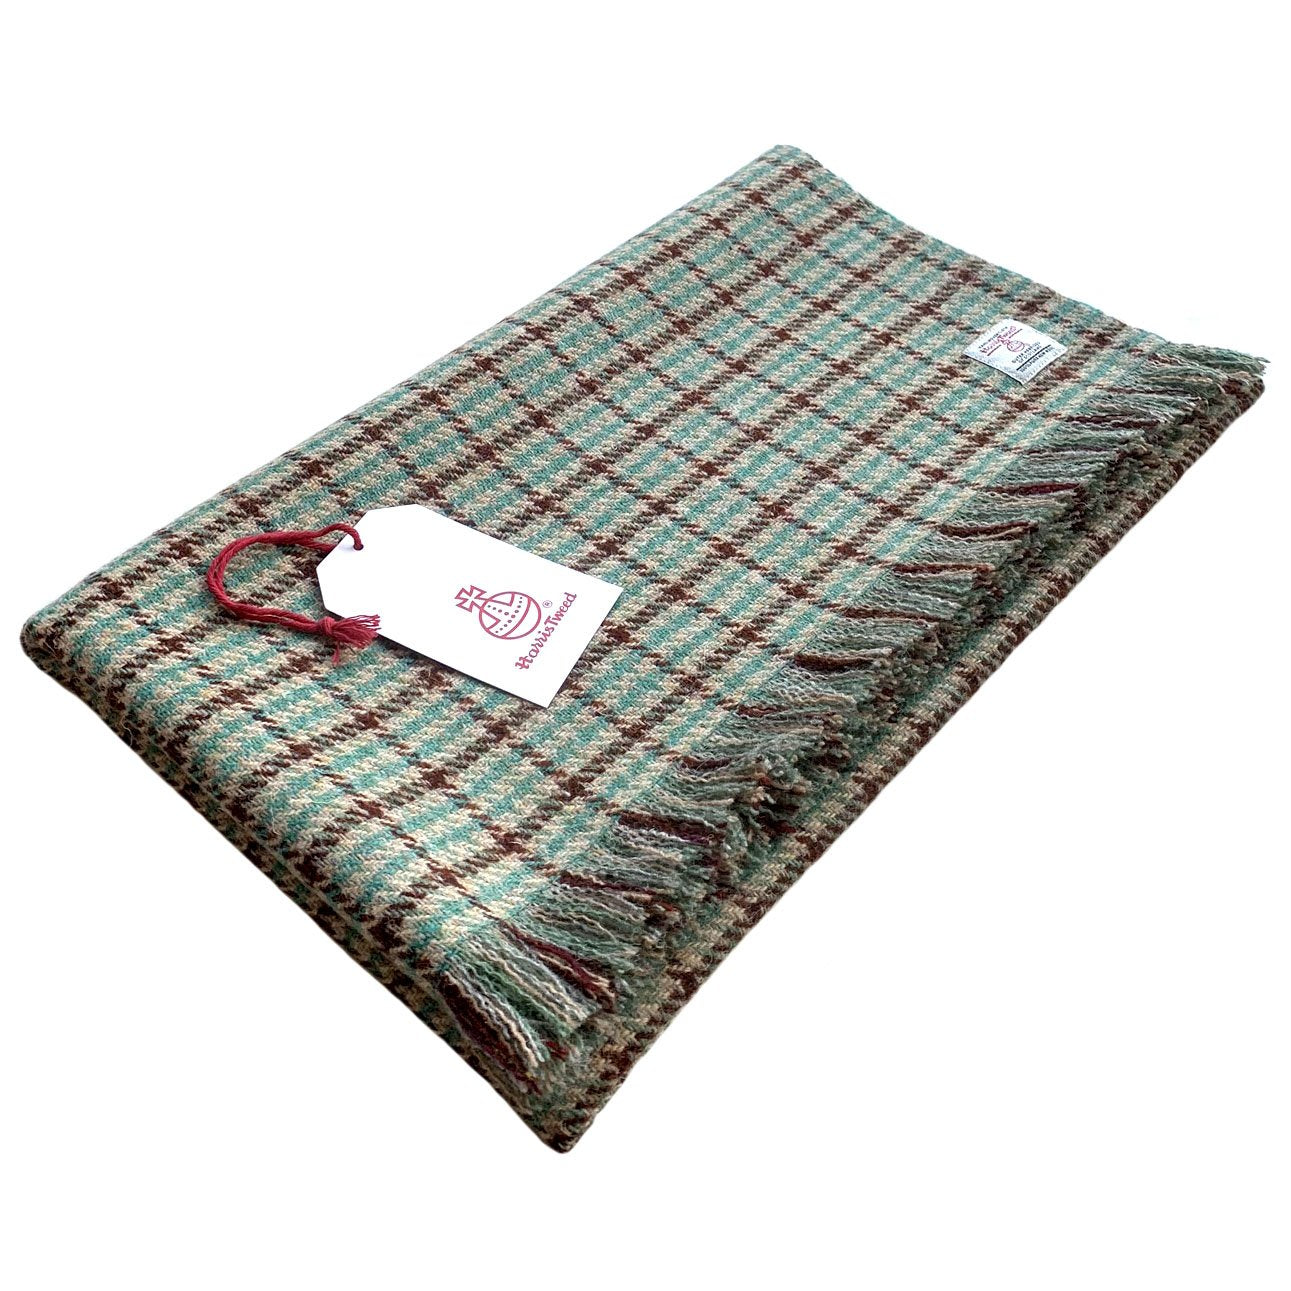 Harris Tweed Fawn with Green & Brown Check Lap Blanket